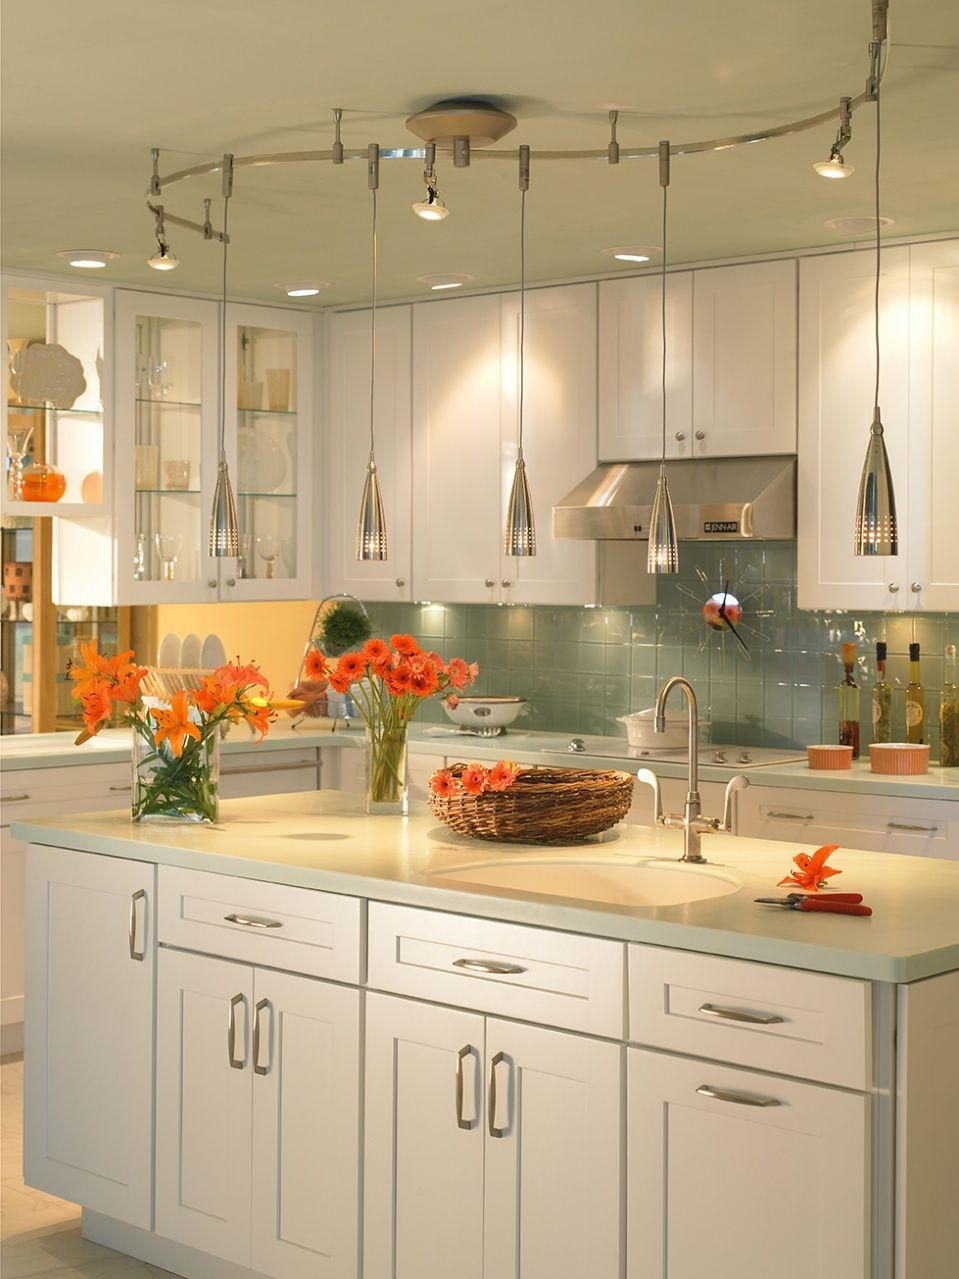 Under Cabinet Kitchen Lighting Options Kitchen Lighting Options Taihan